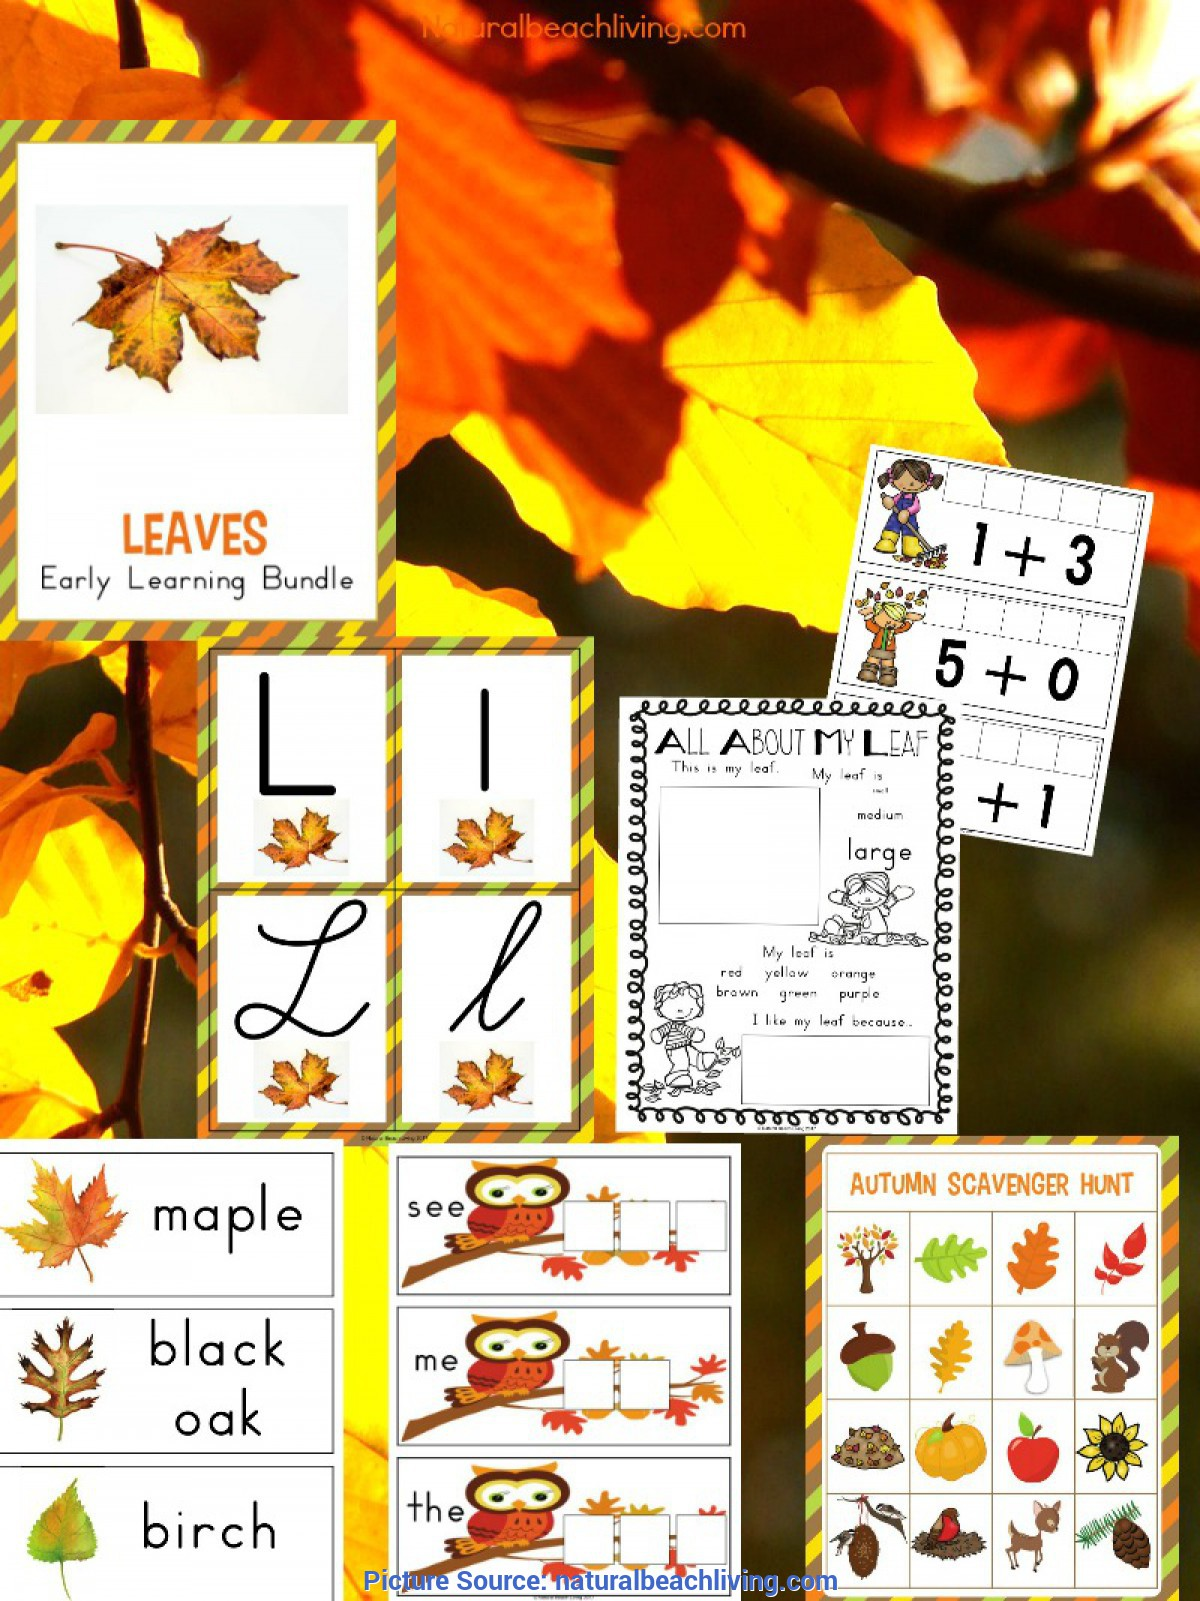 Complex Fall Themed Lesson Plans For Preschool Kindergarten And Preschool Leaf Theme Lesson Plan - Natural Beac